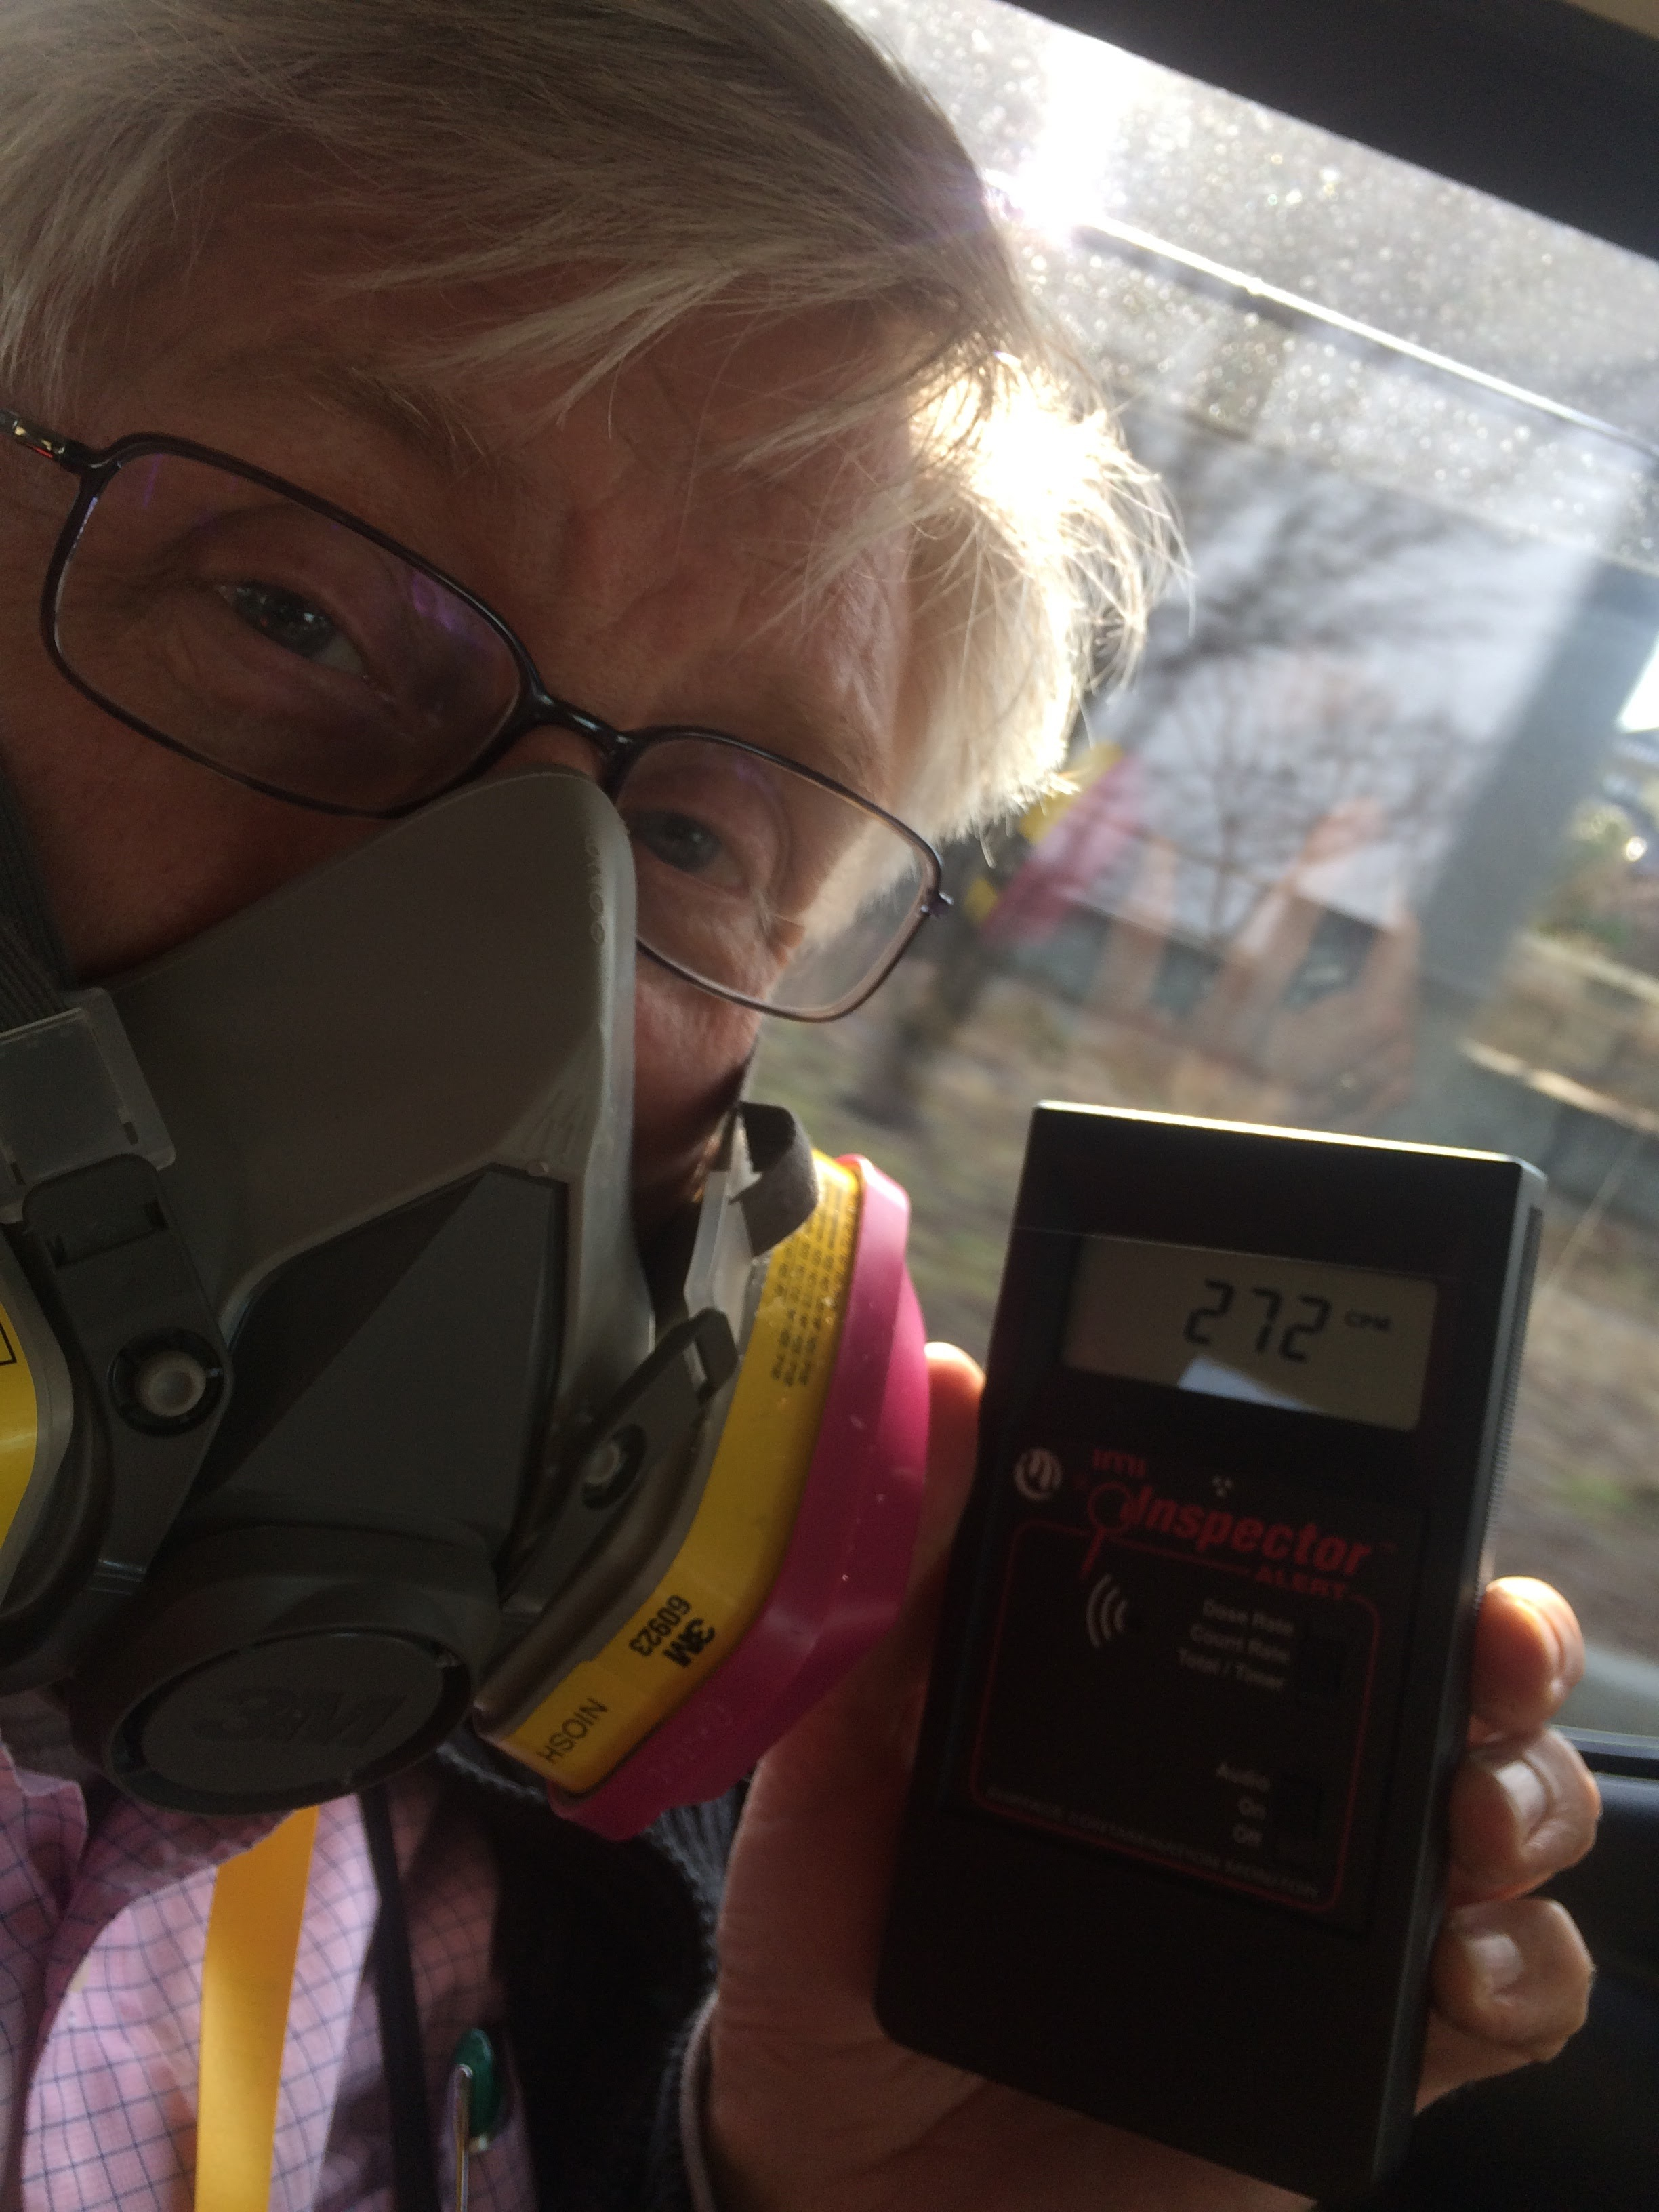 Driving through contaminated town. Windows up. Normal background radiation is more than 10x lower. Love that respirator!